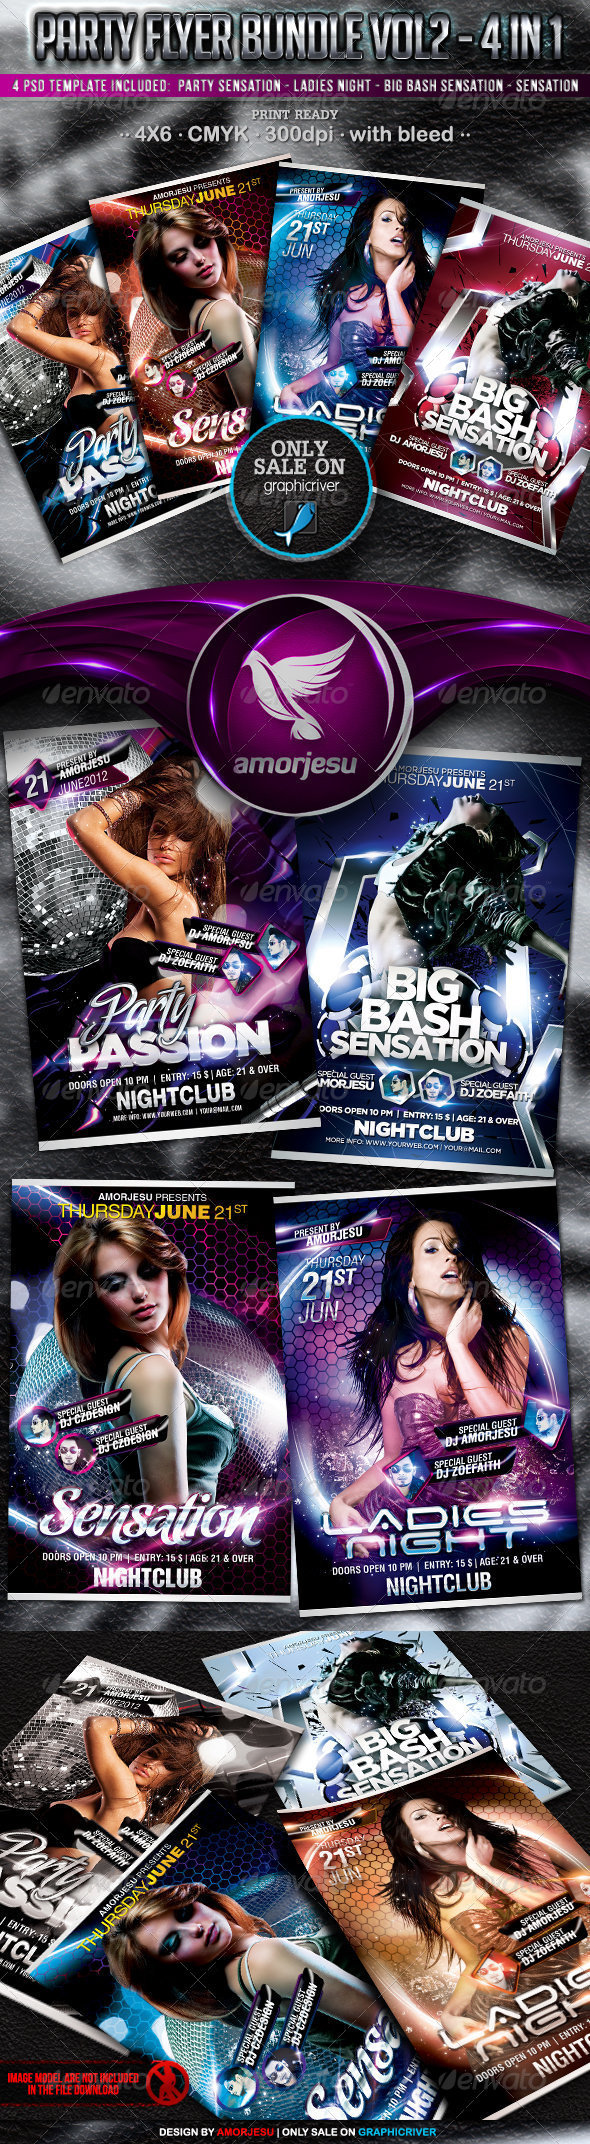 Party Flyer Bundle Vol2 - 4 in 1 - Events Flyers